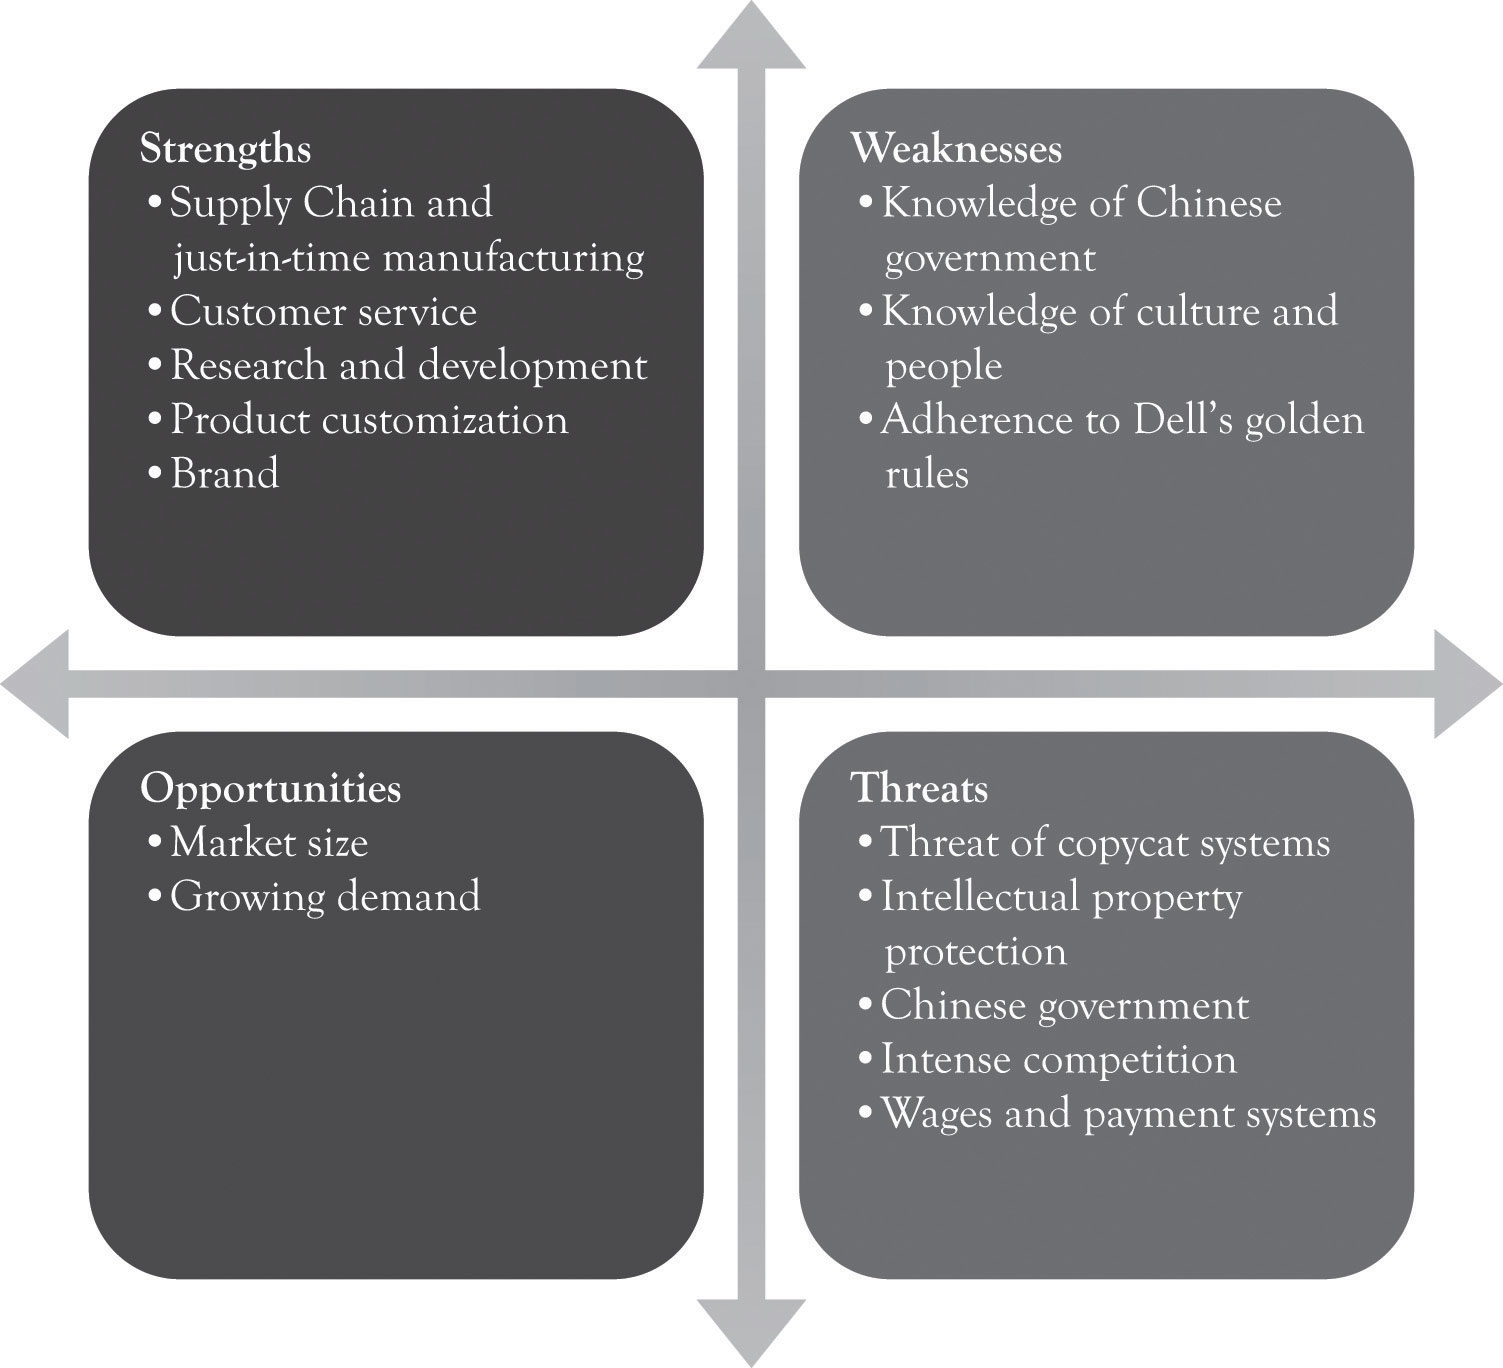 swot analysis of dell current strategies